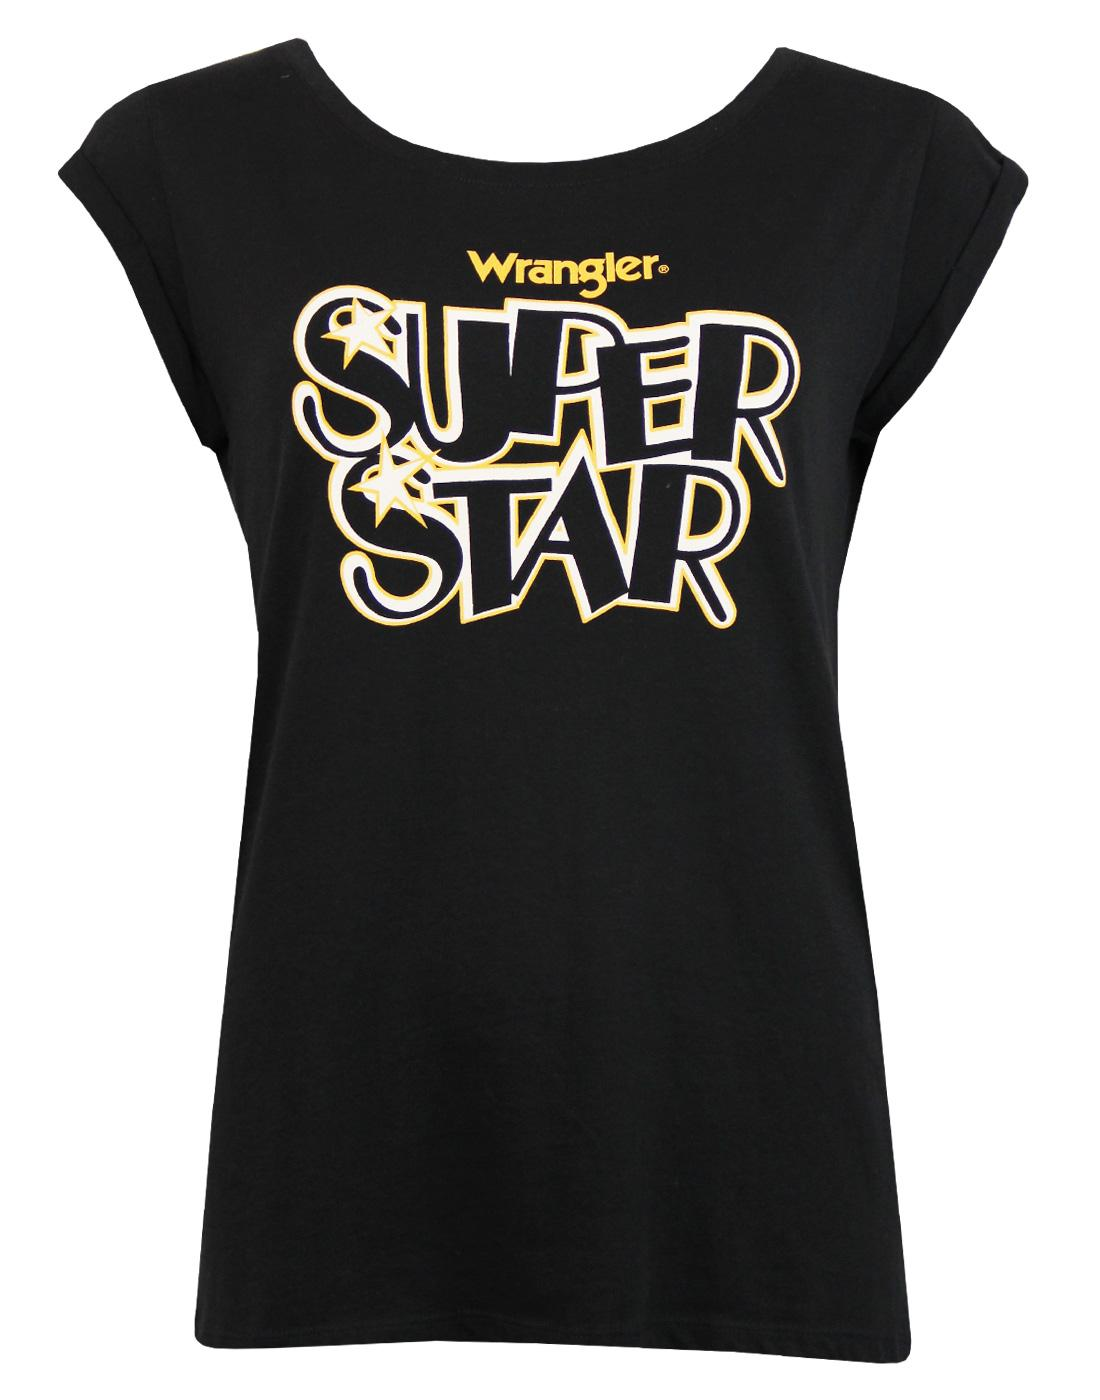 Super Star WRANGLER Retro 70s Cap Sleeve T-Shirt